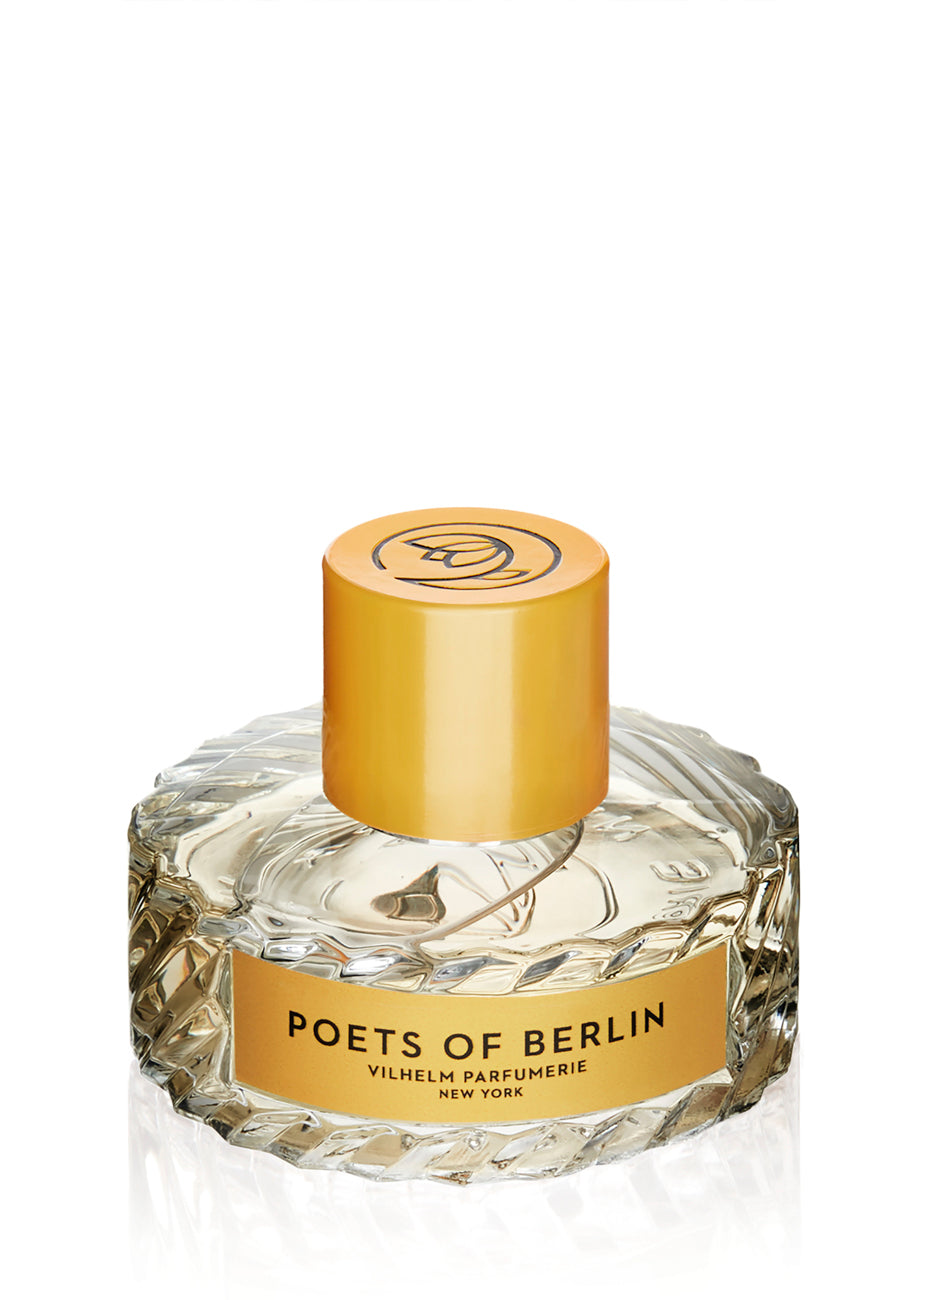 Poets of Berlin Eau De Parfum 50ml